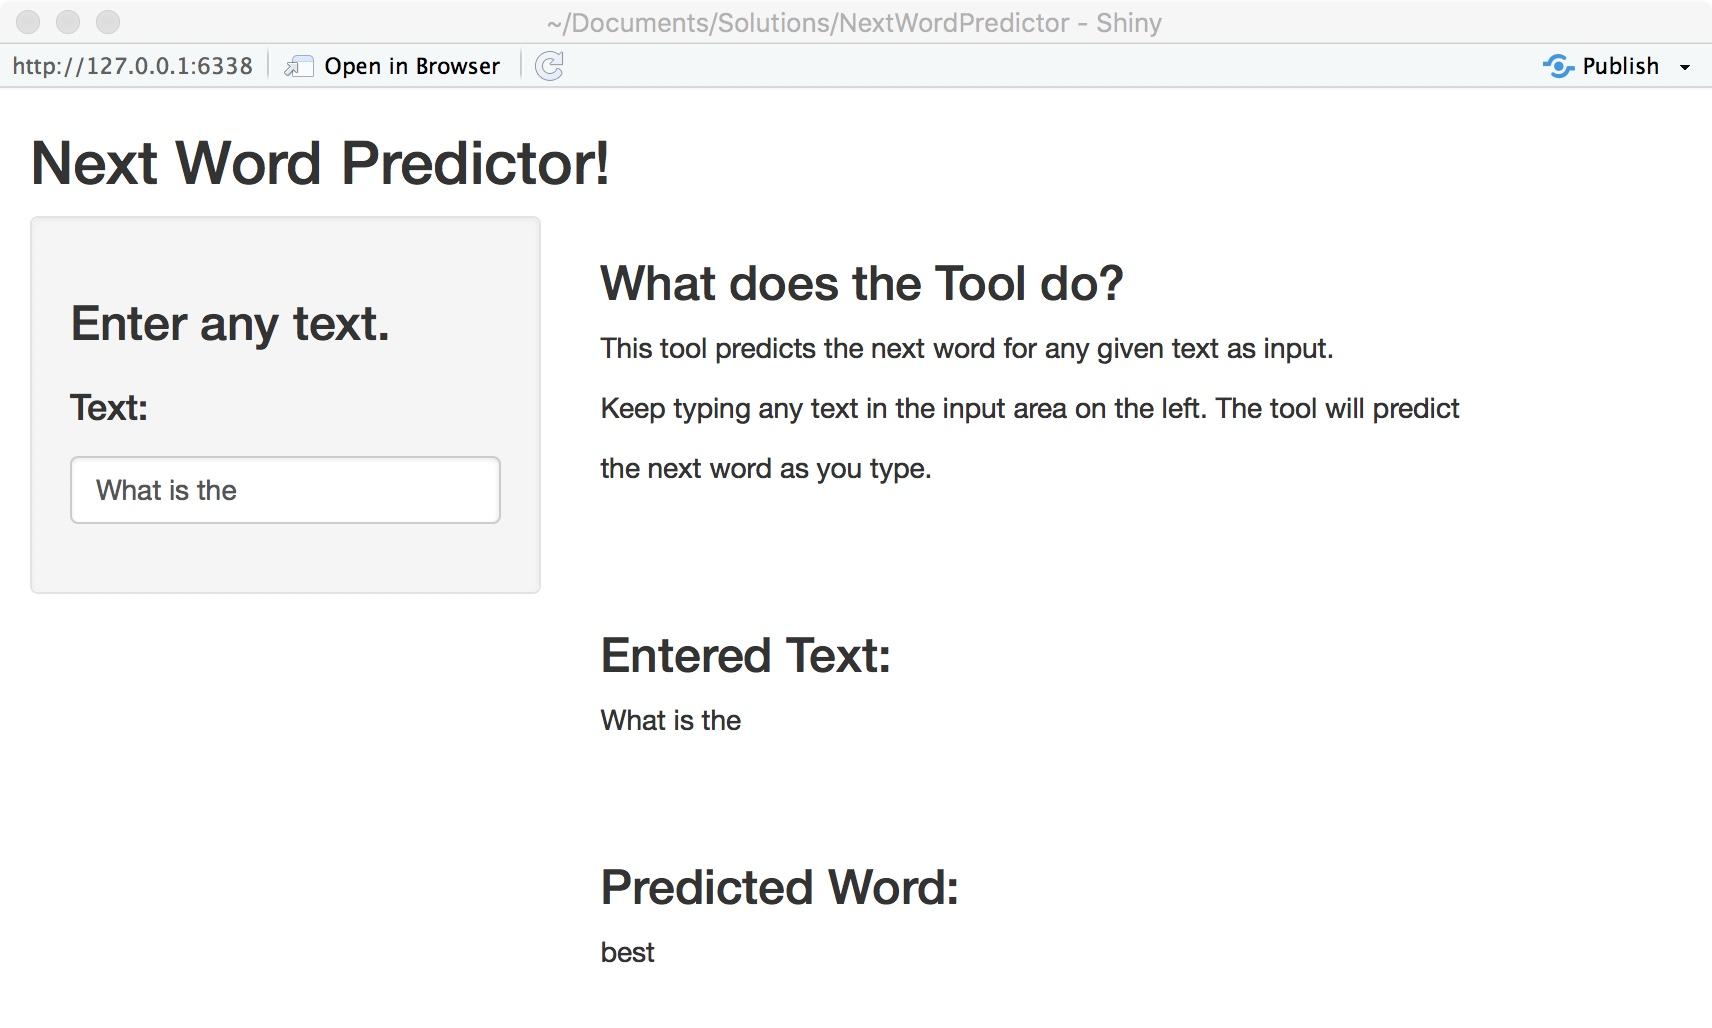 Next Word Predictor